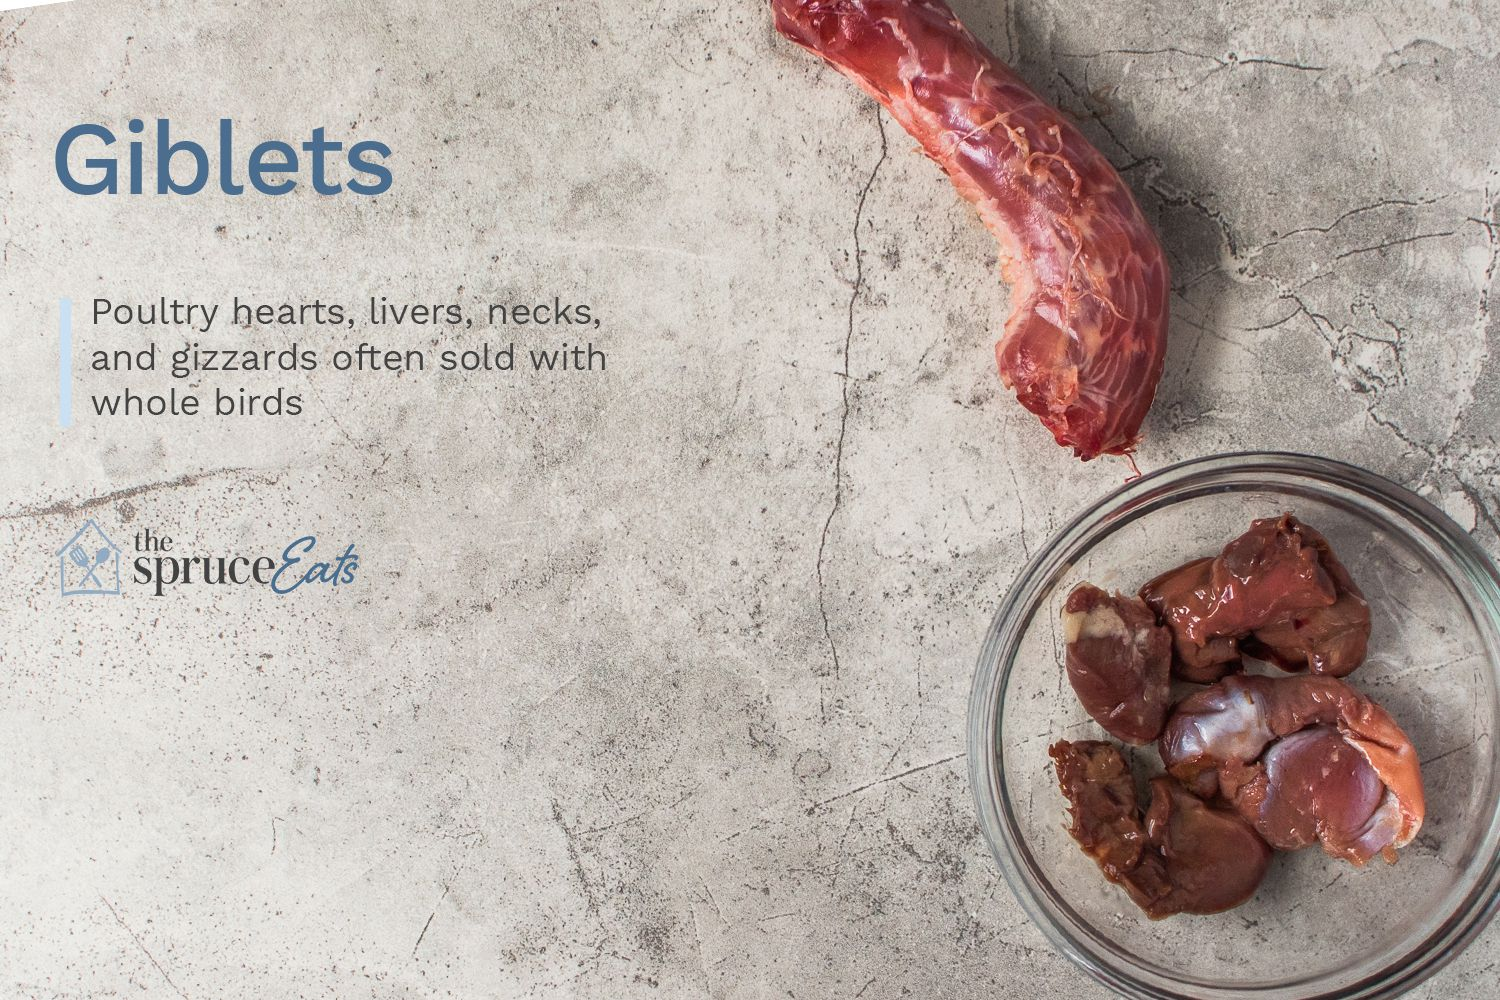 What Are Giblets And How Are They Used